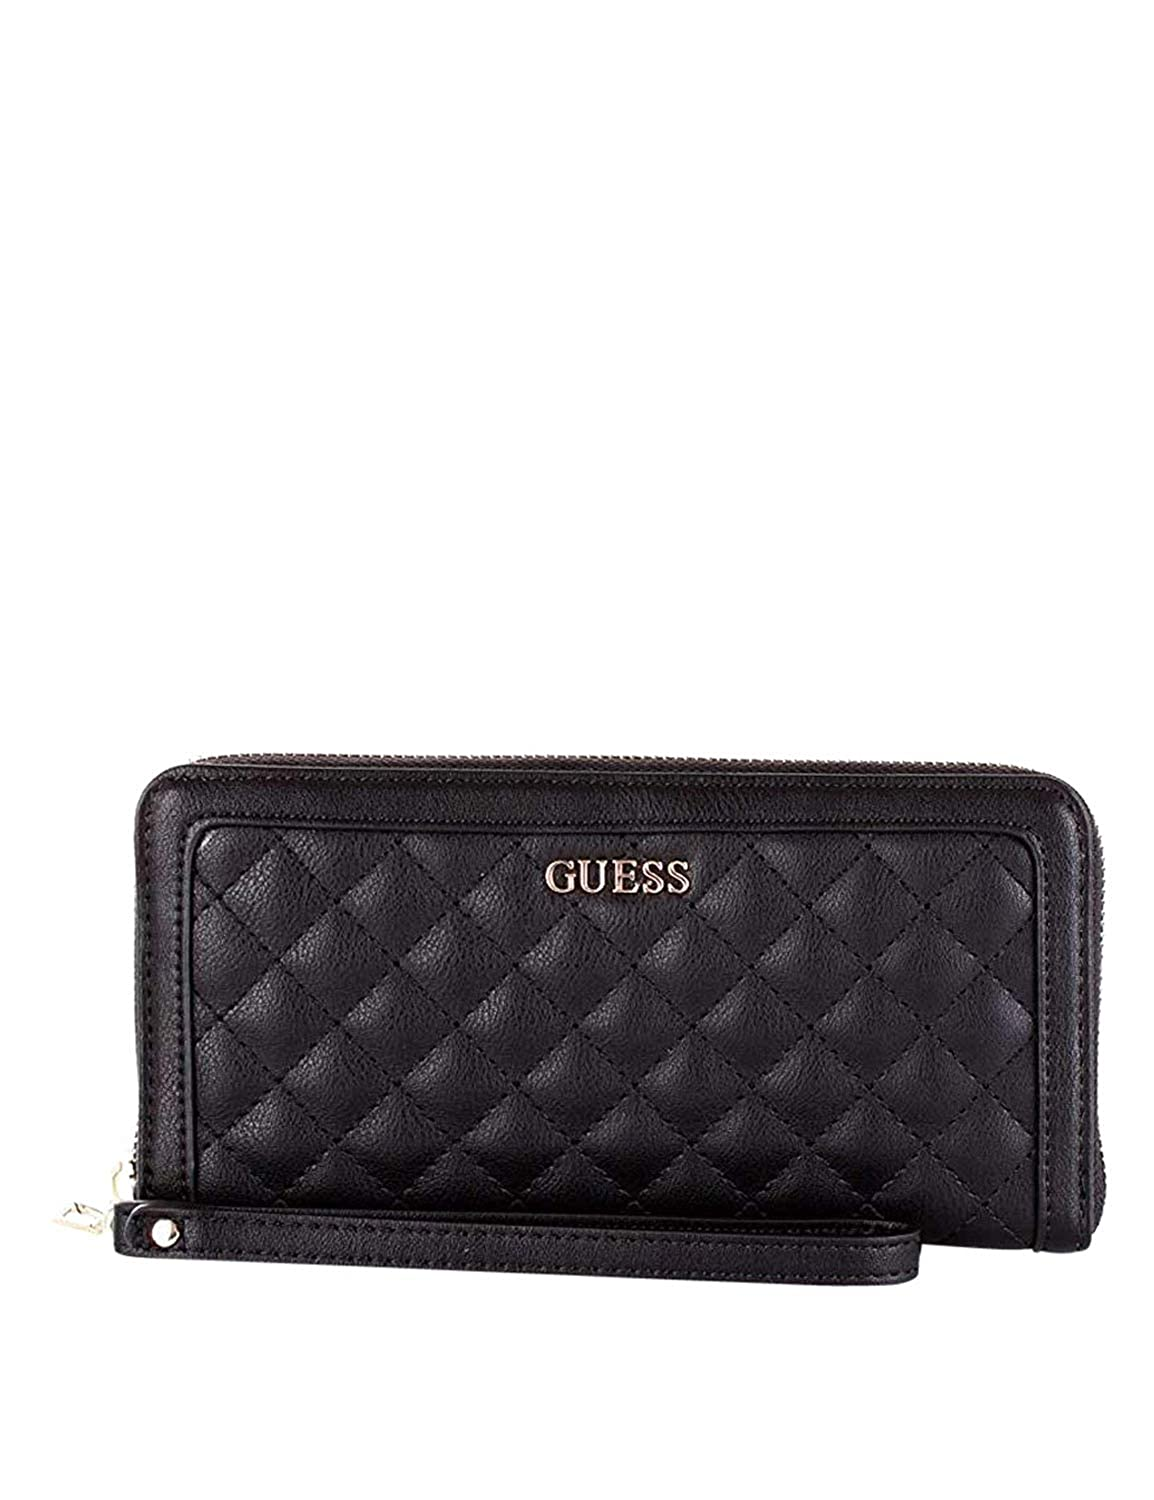 GUESS Wallet Sienna Zip Around